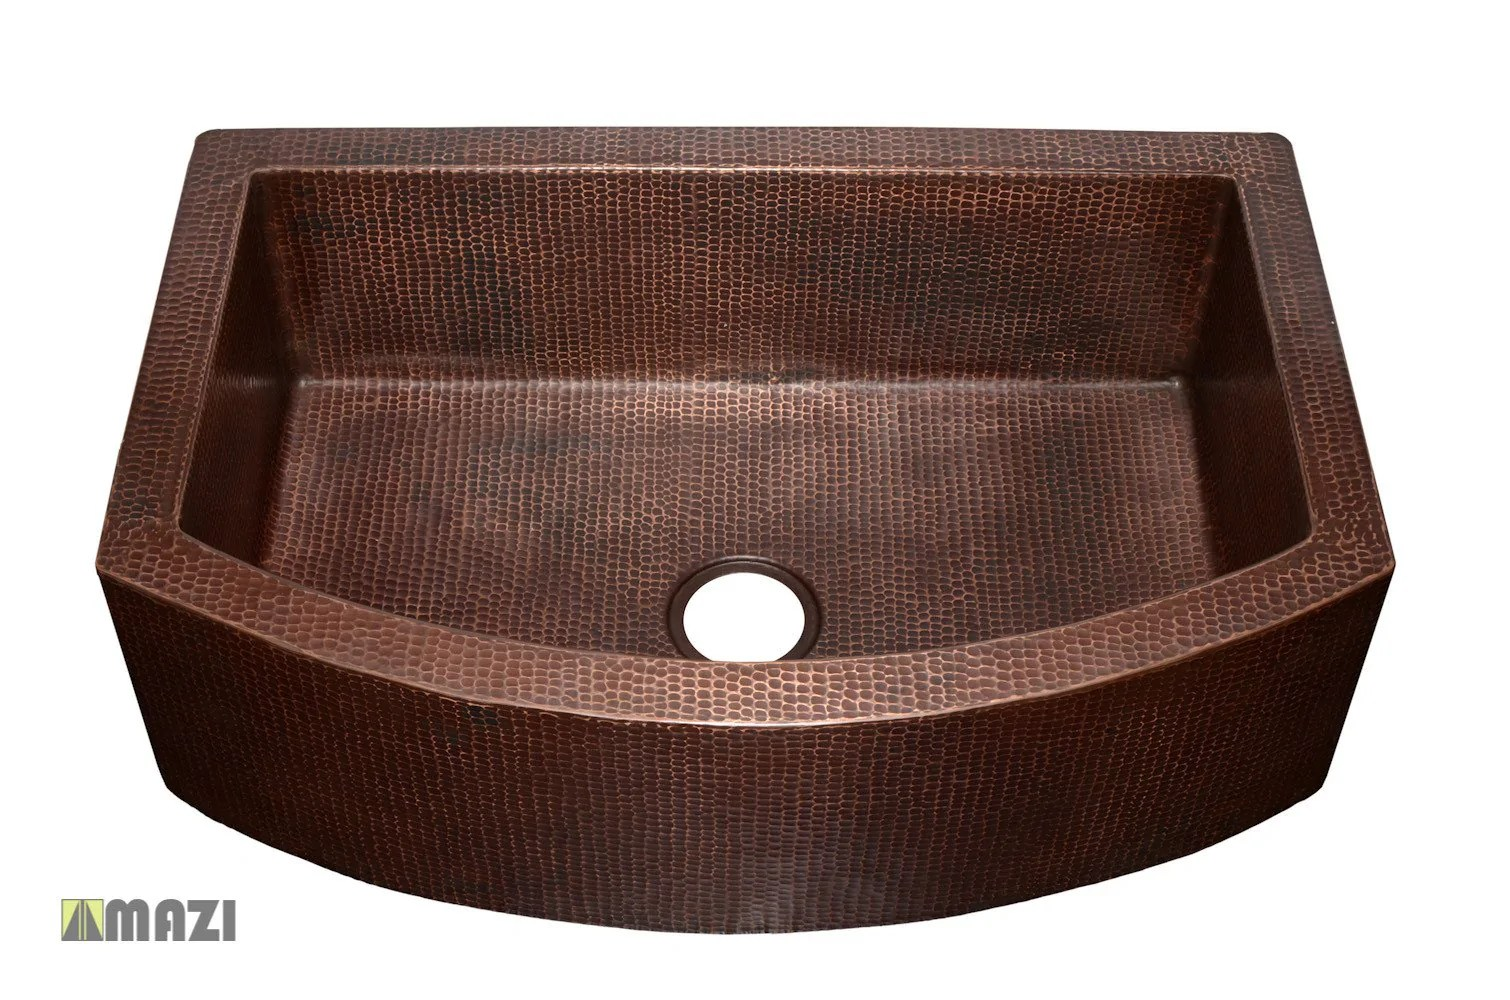 copper kitchen sinks wood top for island sink craks3322 mazi inc tap to expand